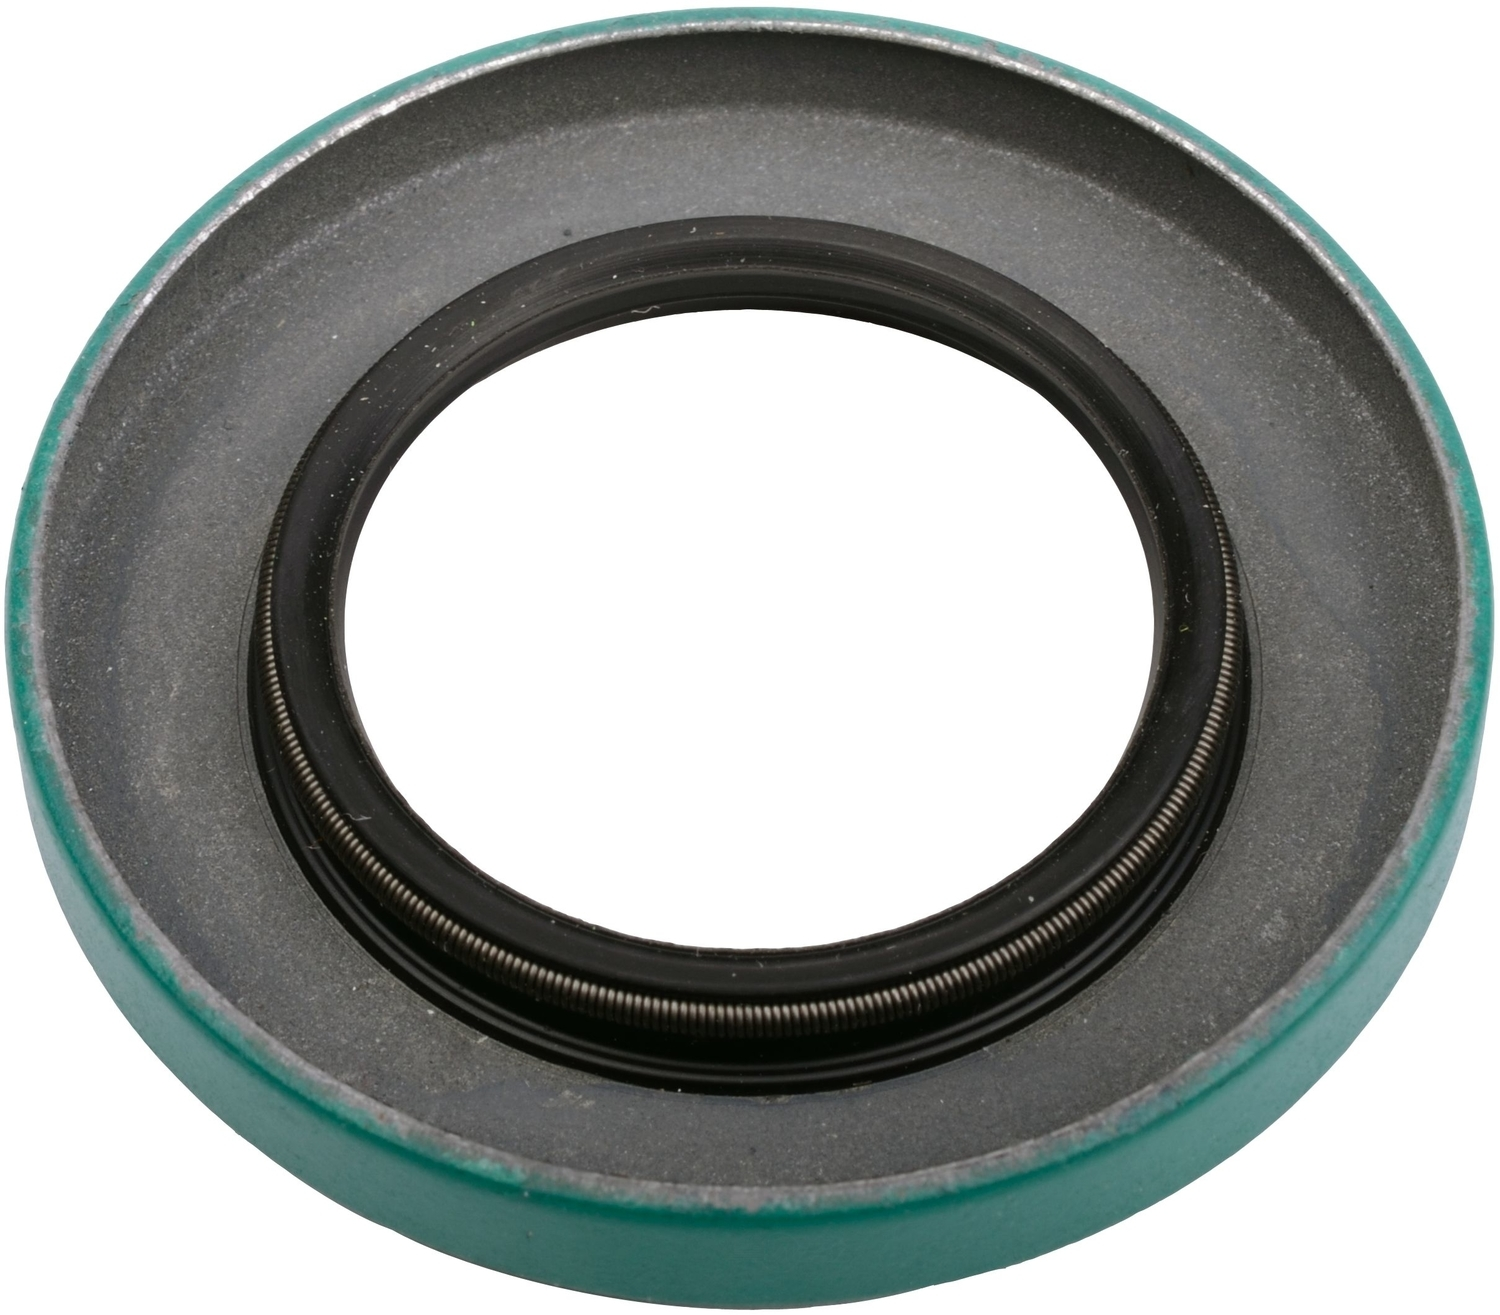 SKF (CHICAGO RAWHIDE) - Manual Trans Input Shaft Seal - SKF 10583